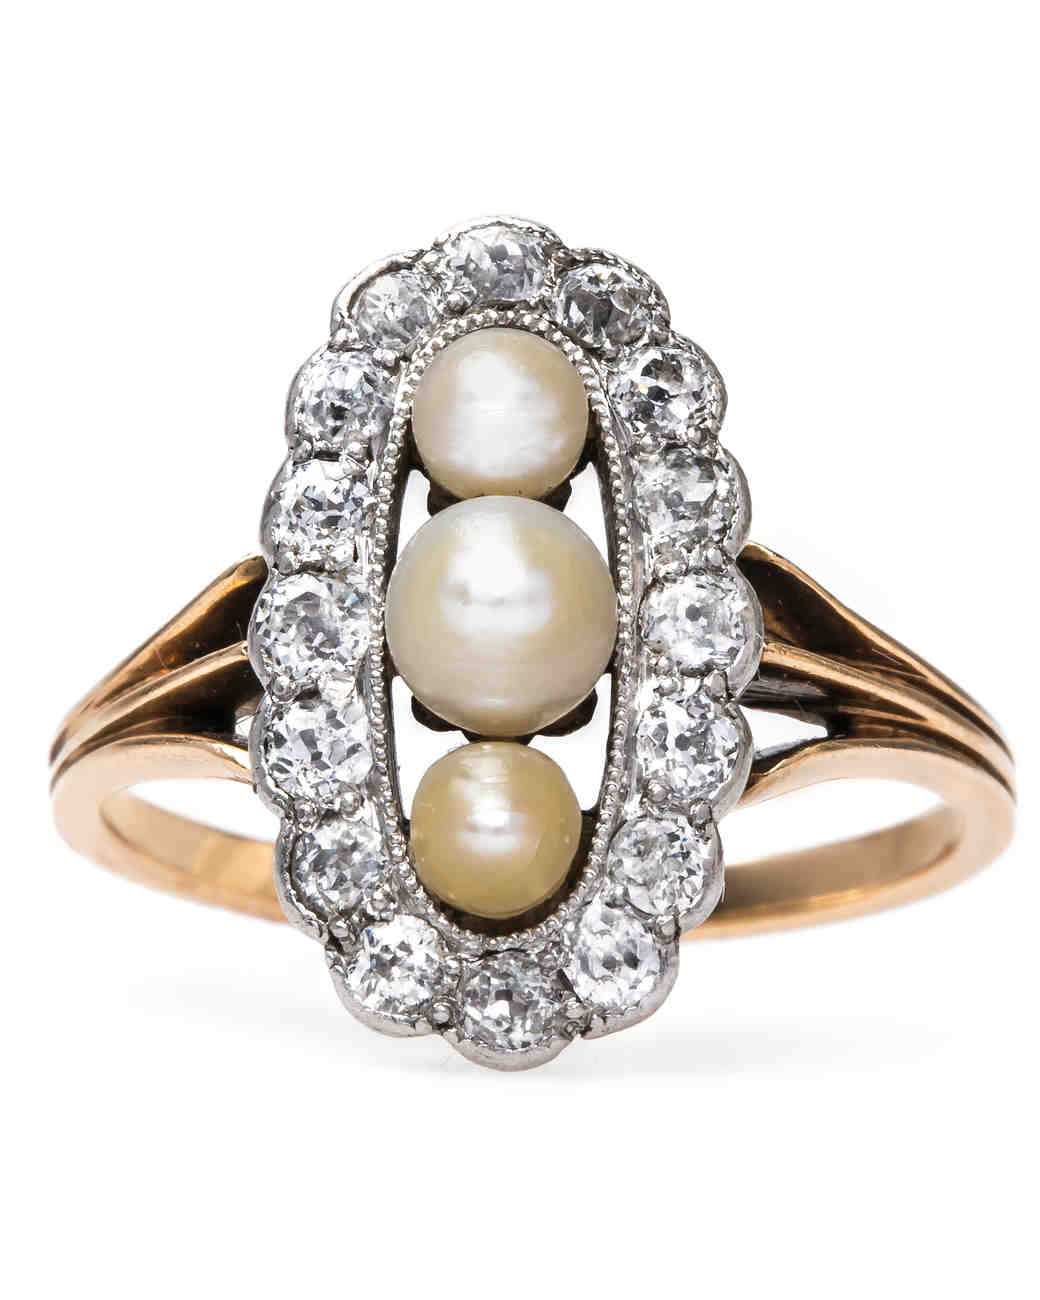 brides styles rings engagement a gold and mizuki pearls ring gallery diamond karat porter pearl